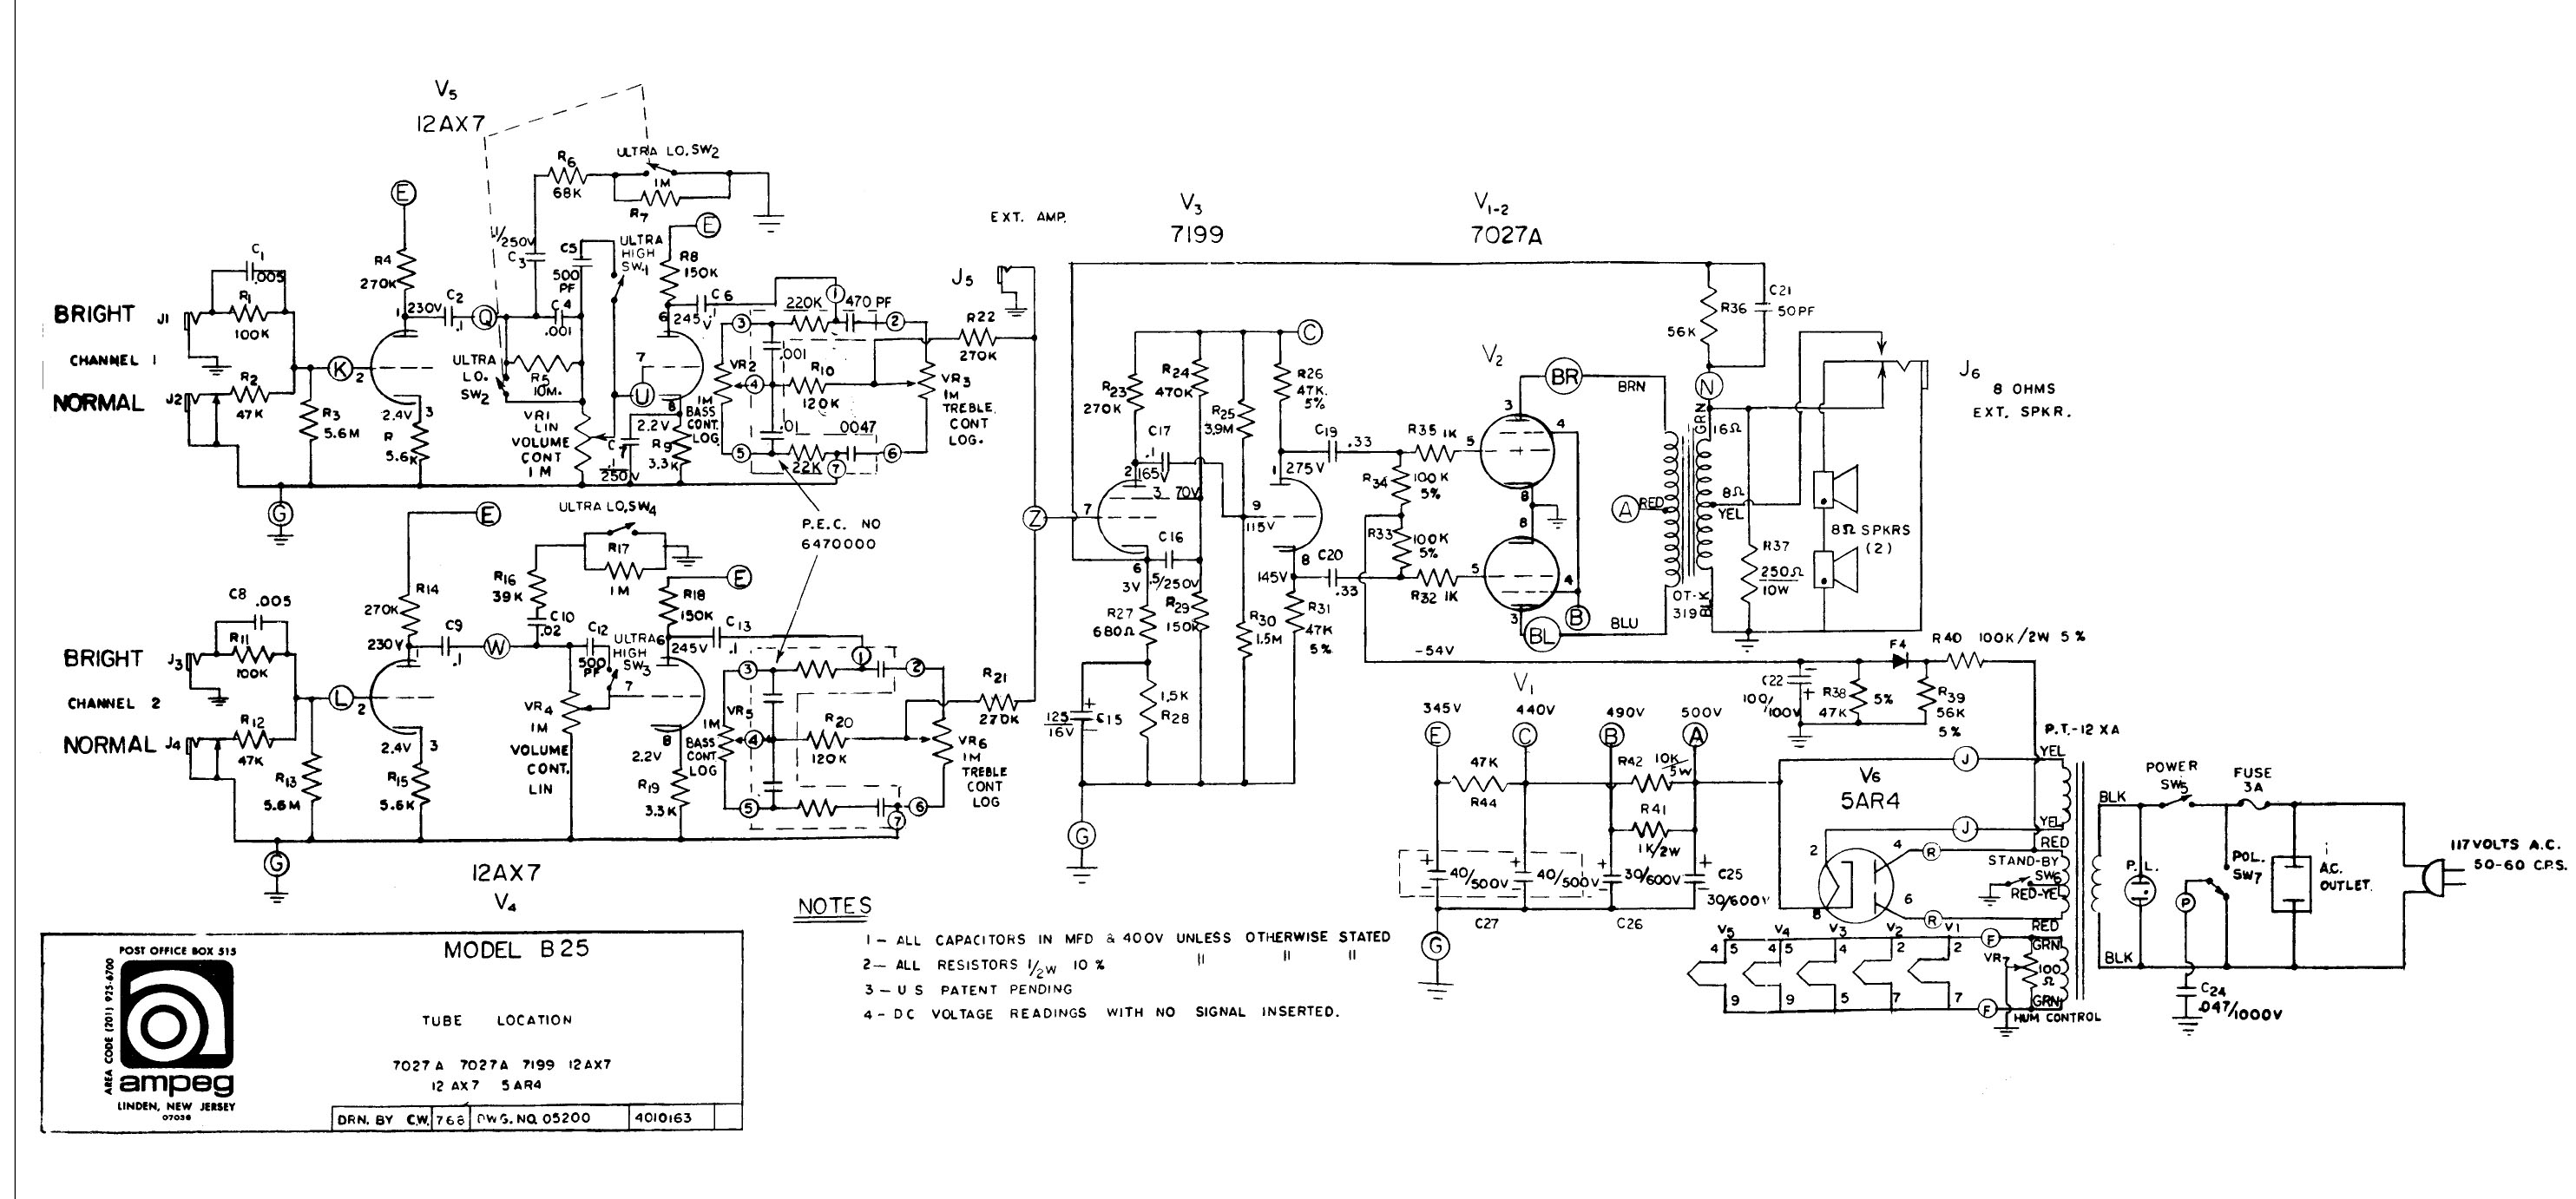 For that Vintage ampeg schematics criticism